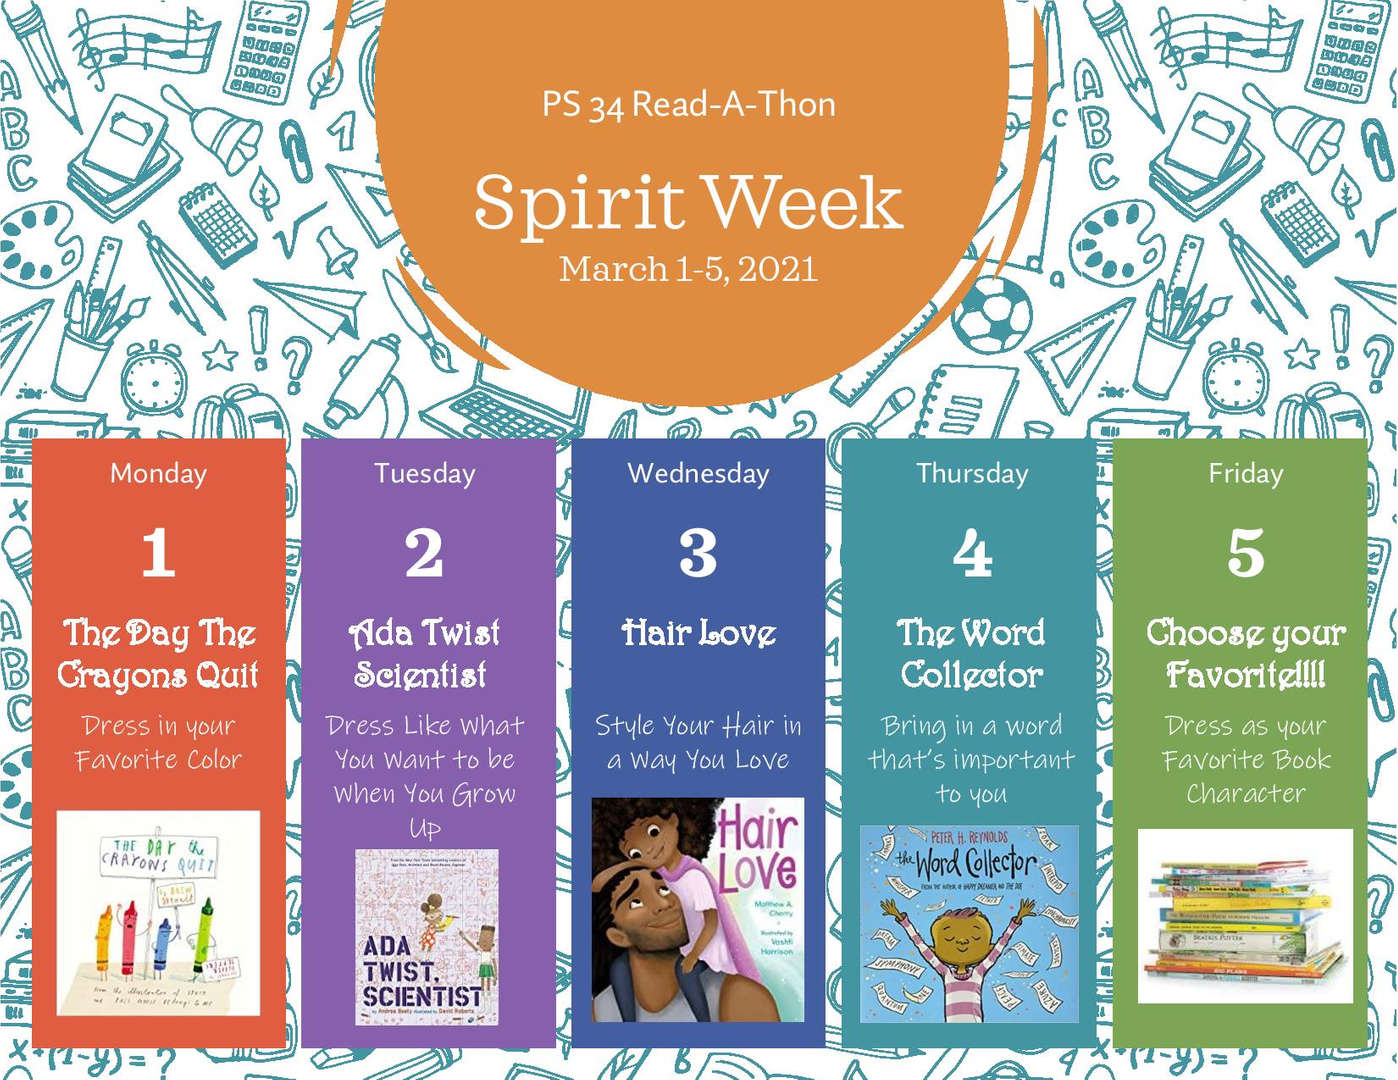 PS 34 Spirit week Read A thon March 1-5 2021